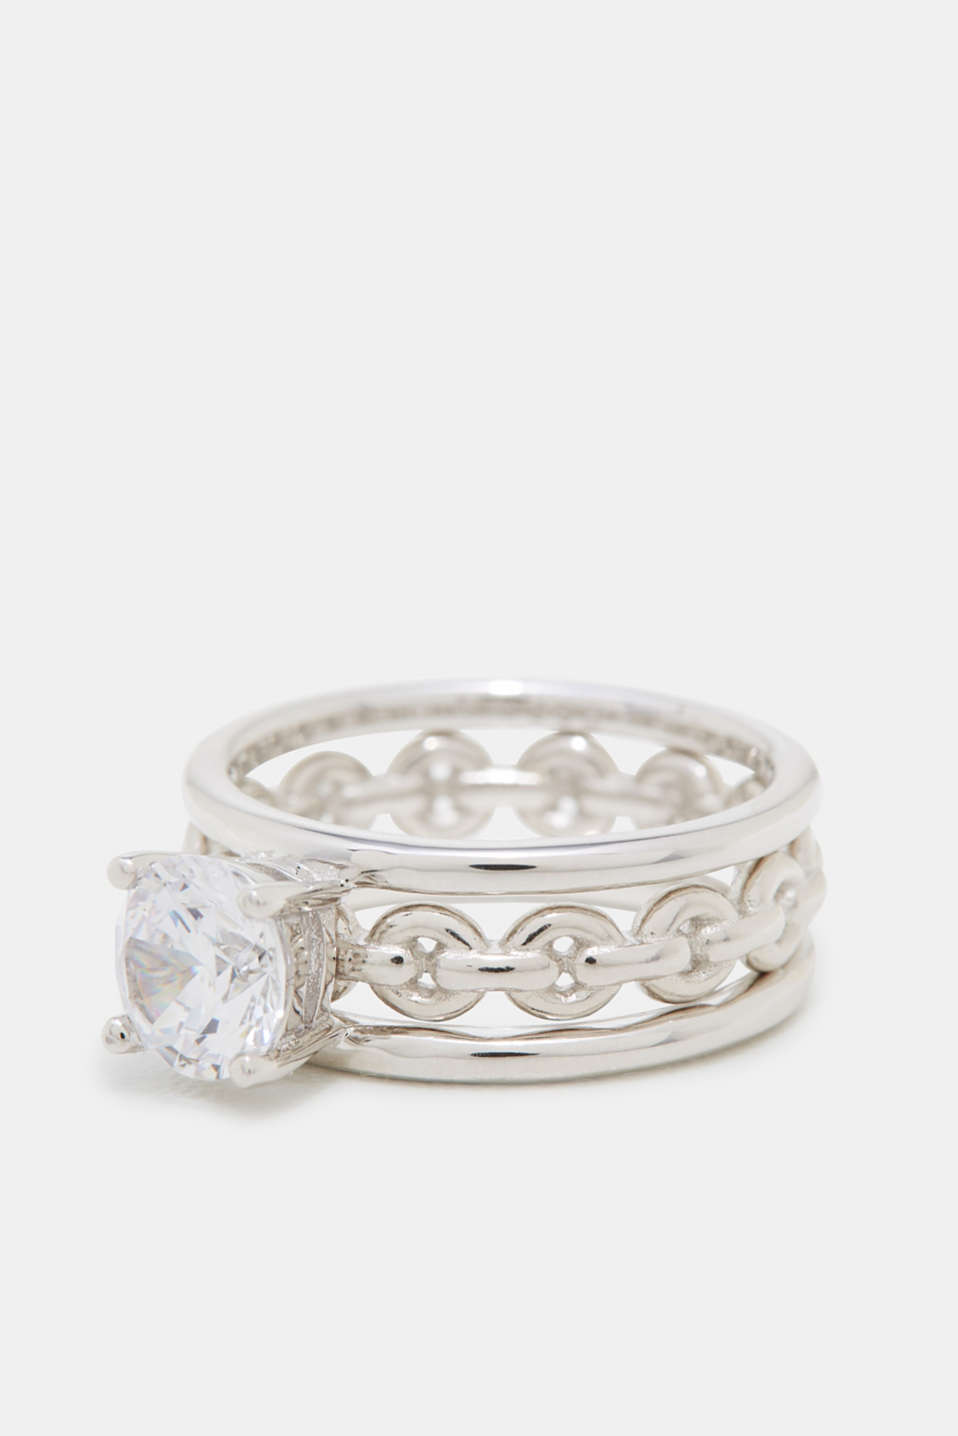 Esprit - Ring set with zirconia, in sterling silver